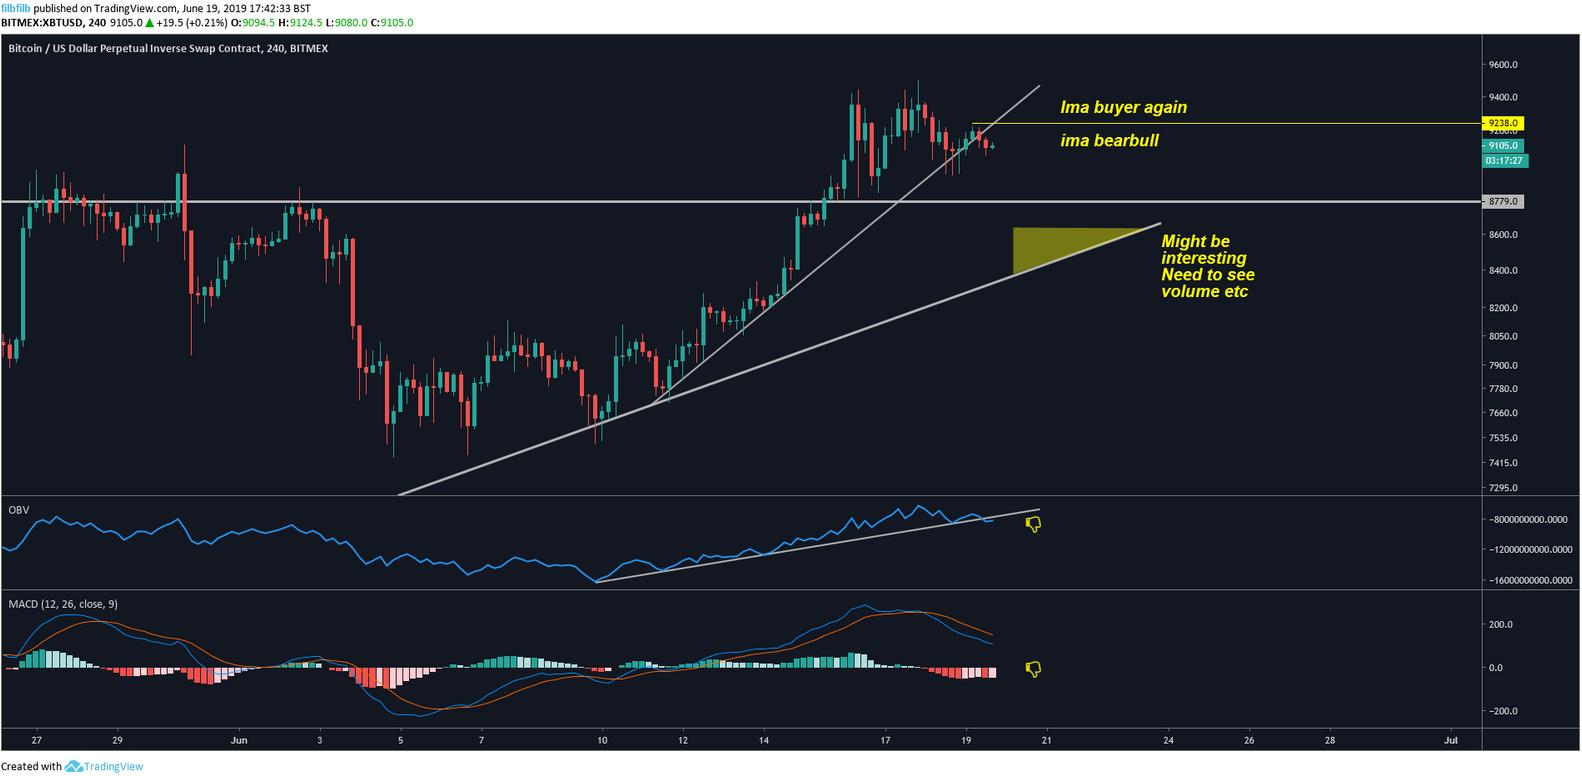 If Bitcoin (BTC) Hits $10,000 Like Analysts Expect, What's Next? 2